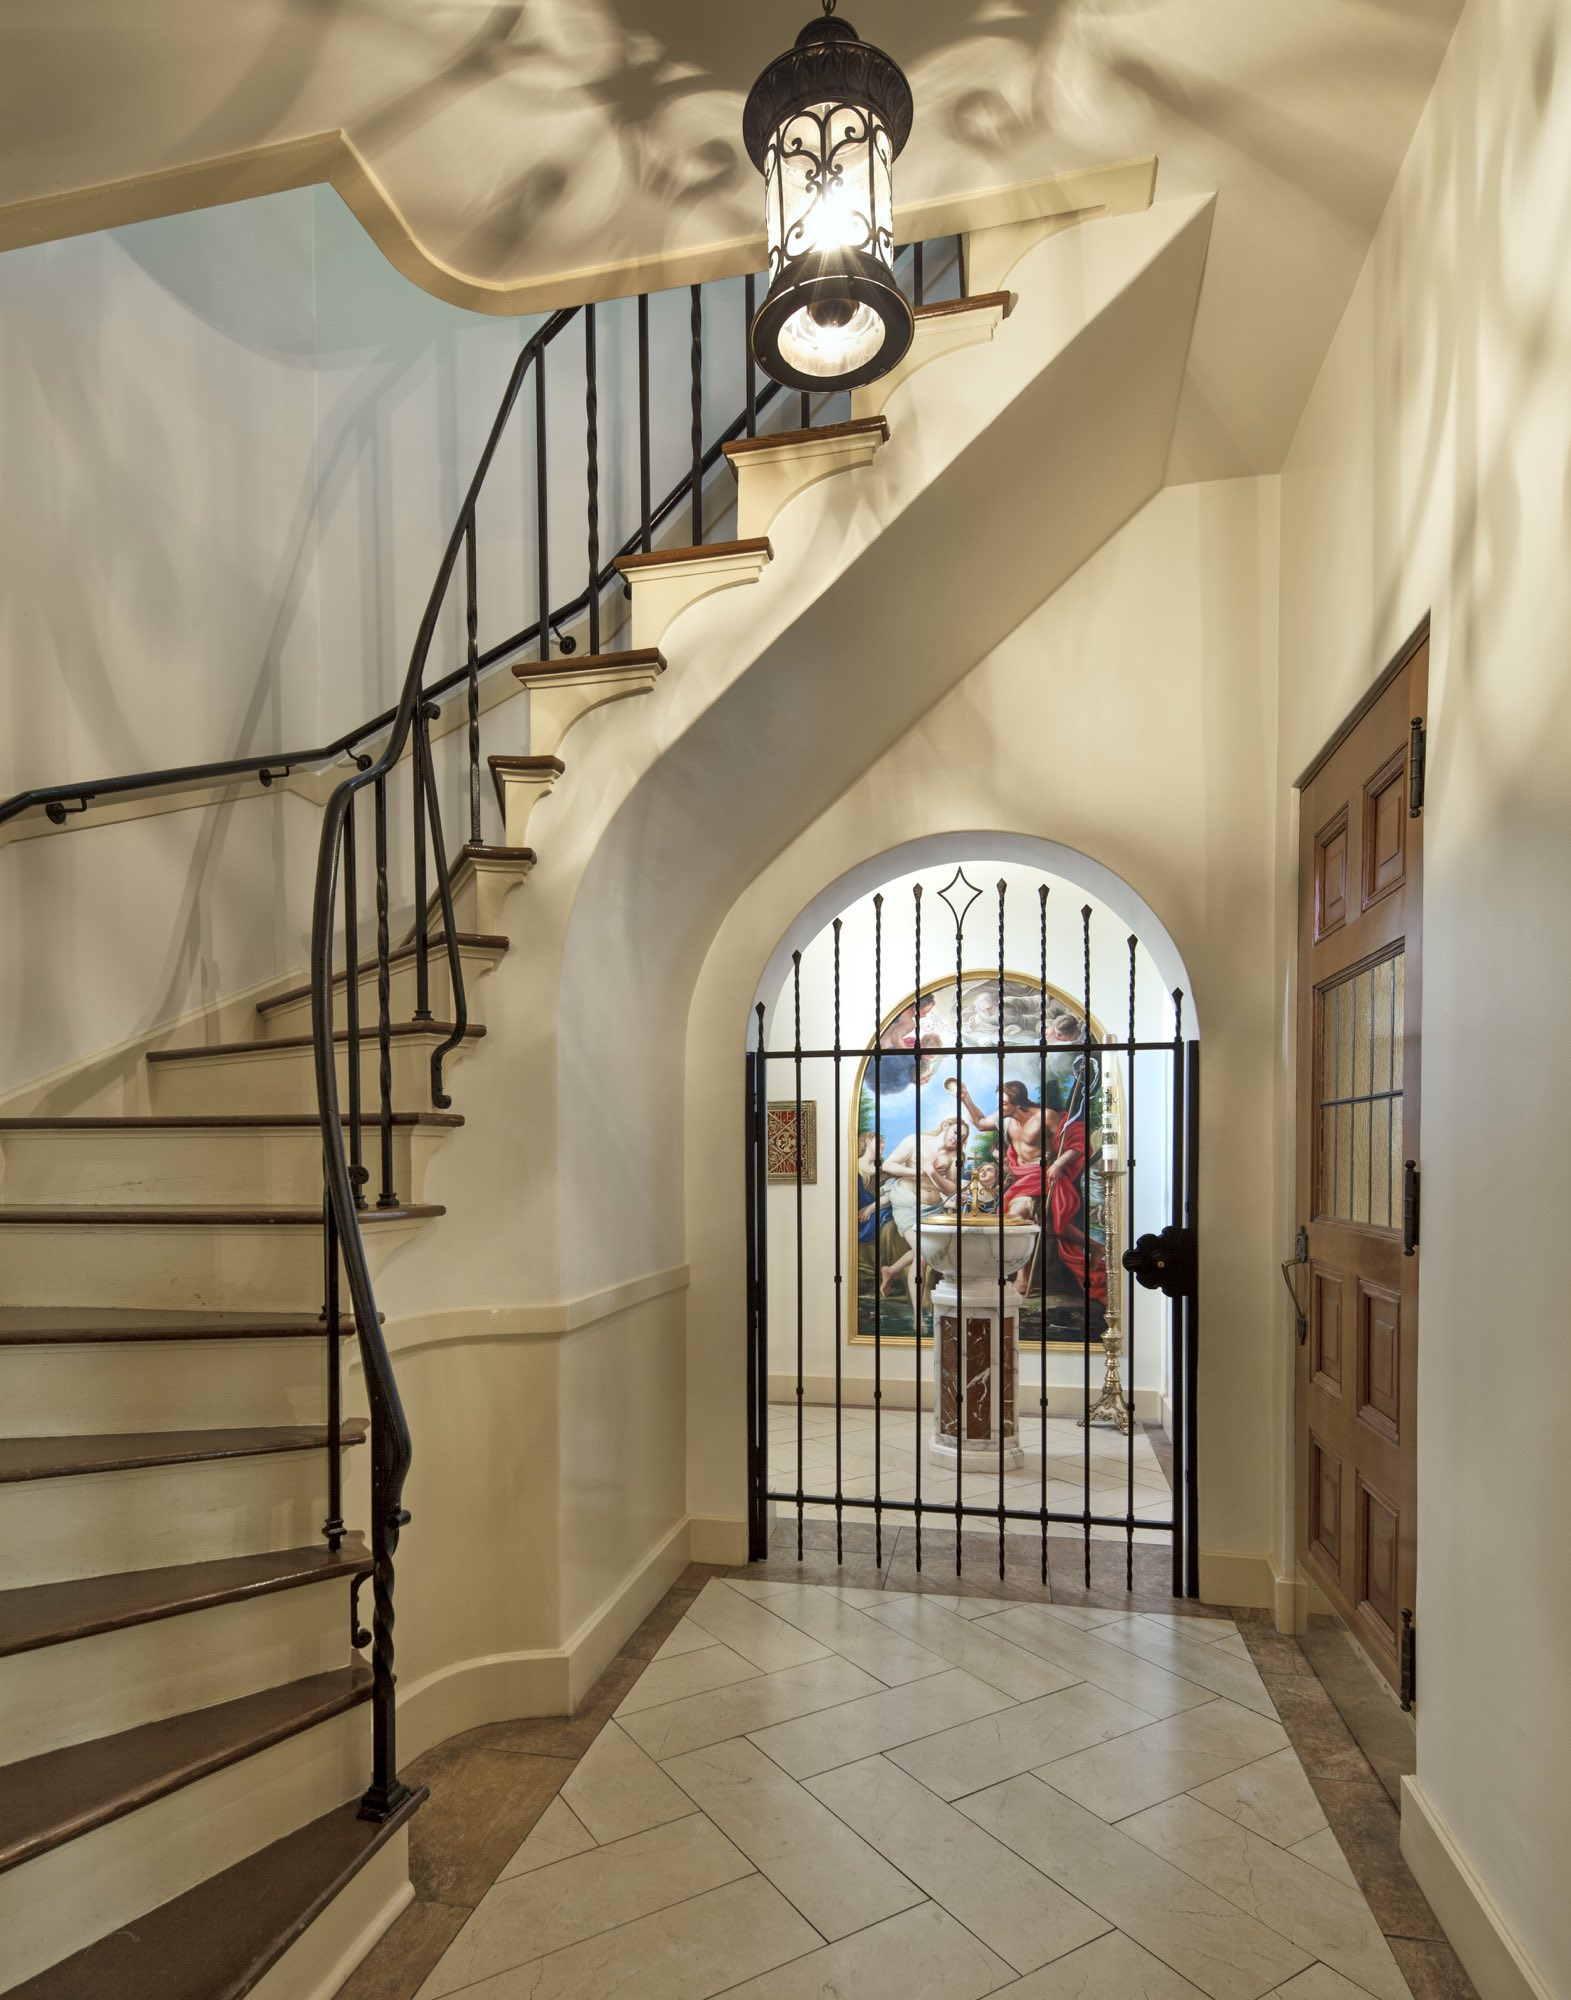 Narthex baptistry wrought iron light and choir loft stairwell stone tile floor baptism of Christ painting by Harrison Design